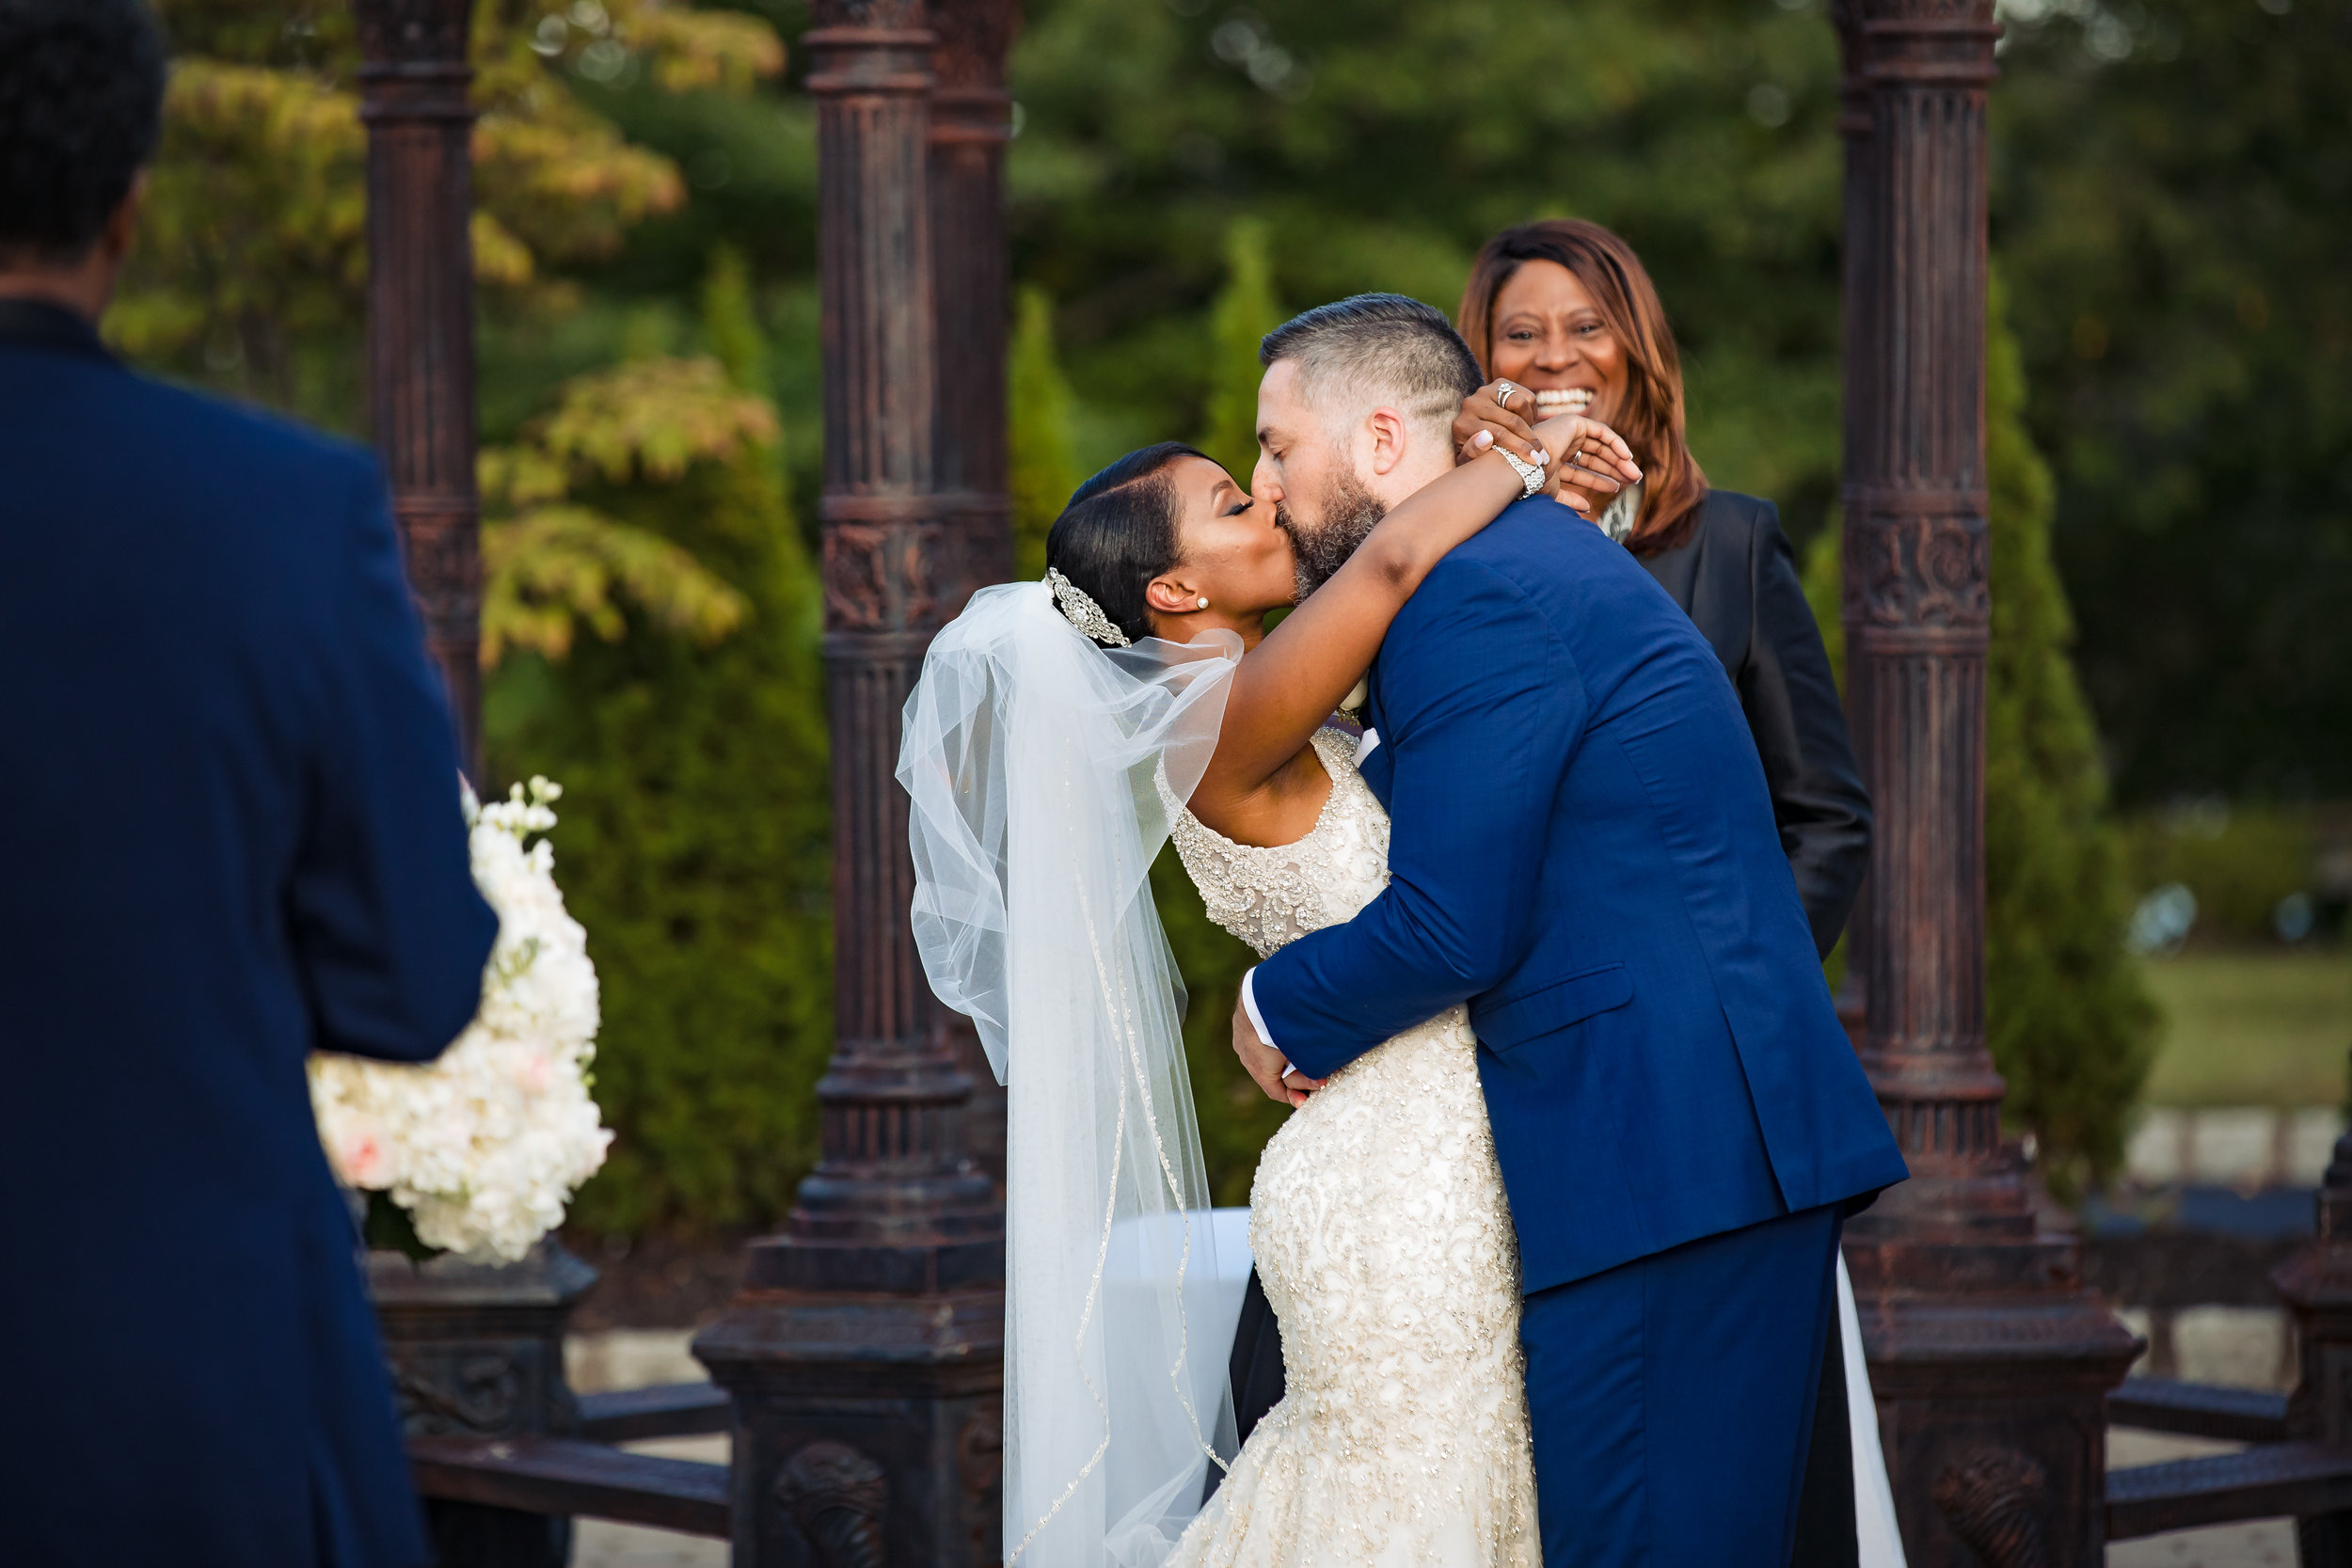 first kiss now married as bride and groom